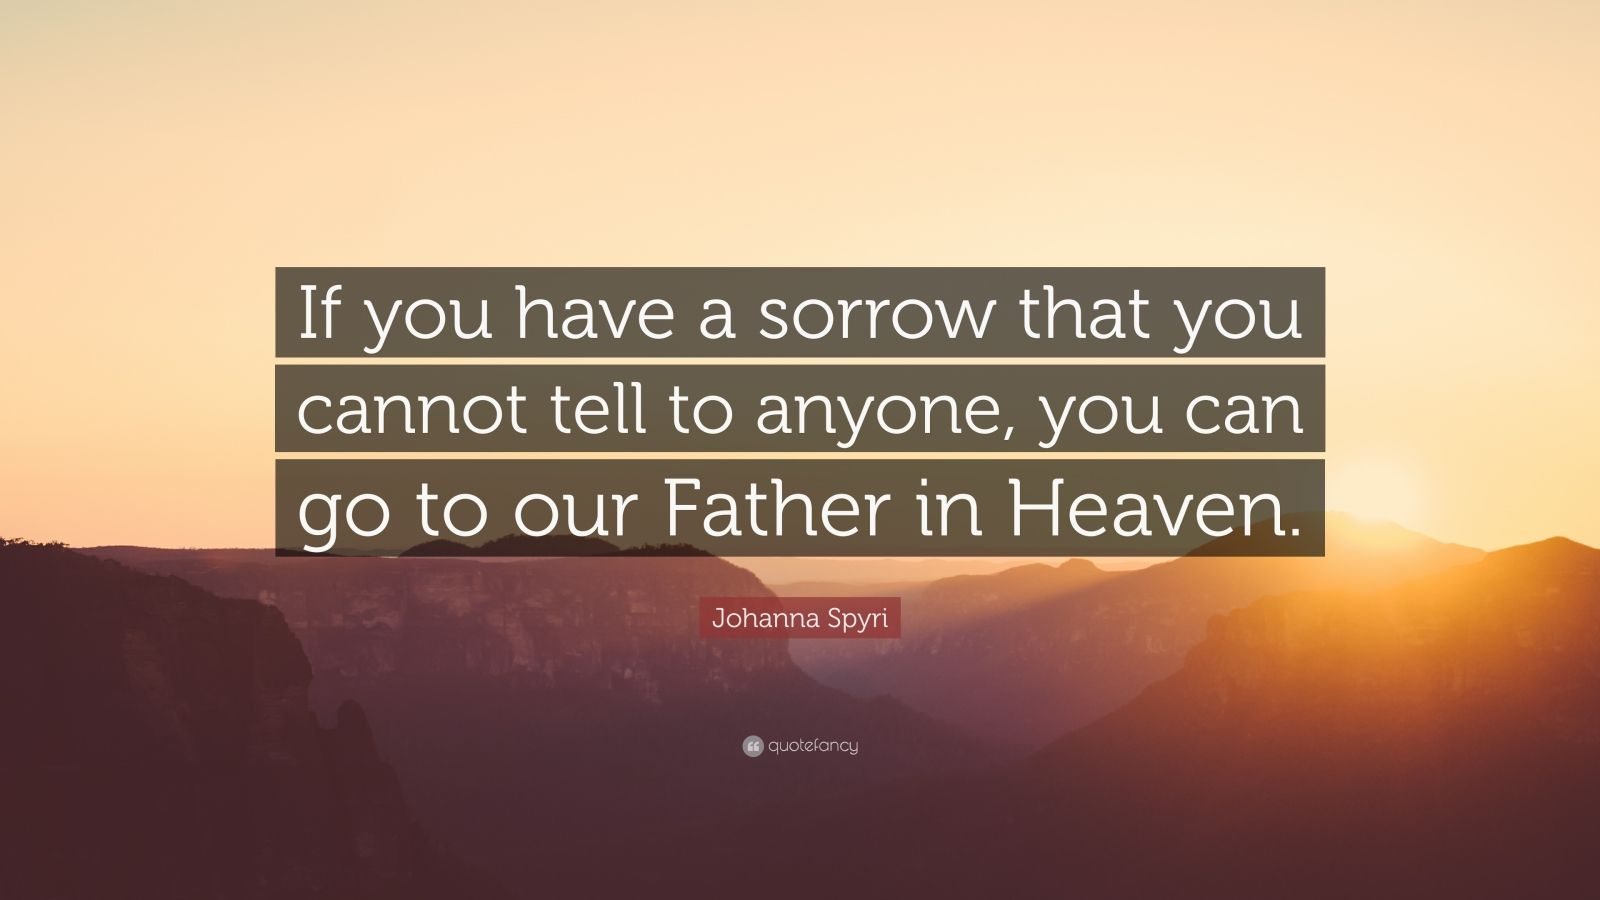 """Johanna Spyri Quote: """"If you have a sorrow that you cannot tell to anyone, you can go to our Father in Heaven."""""""